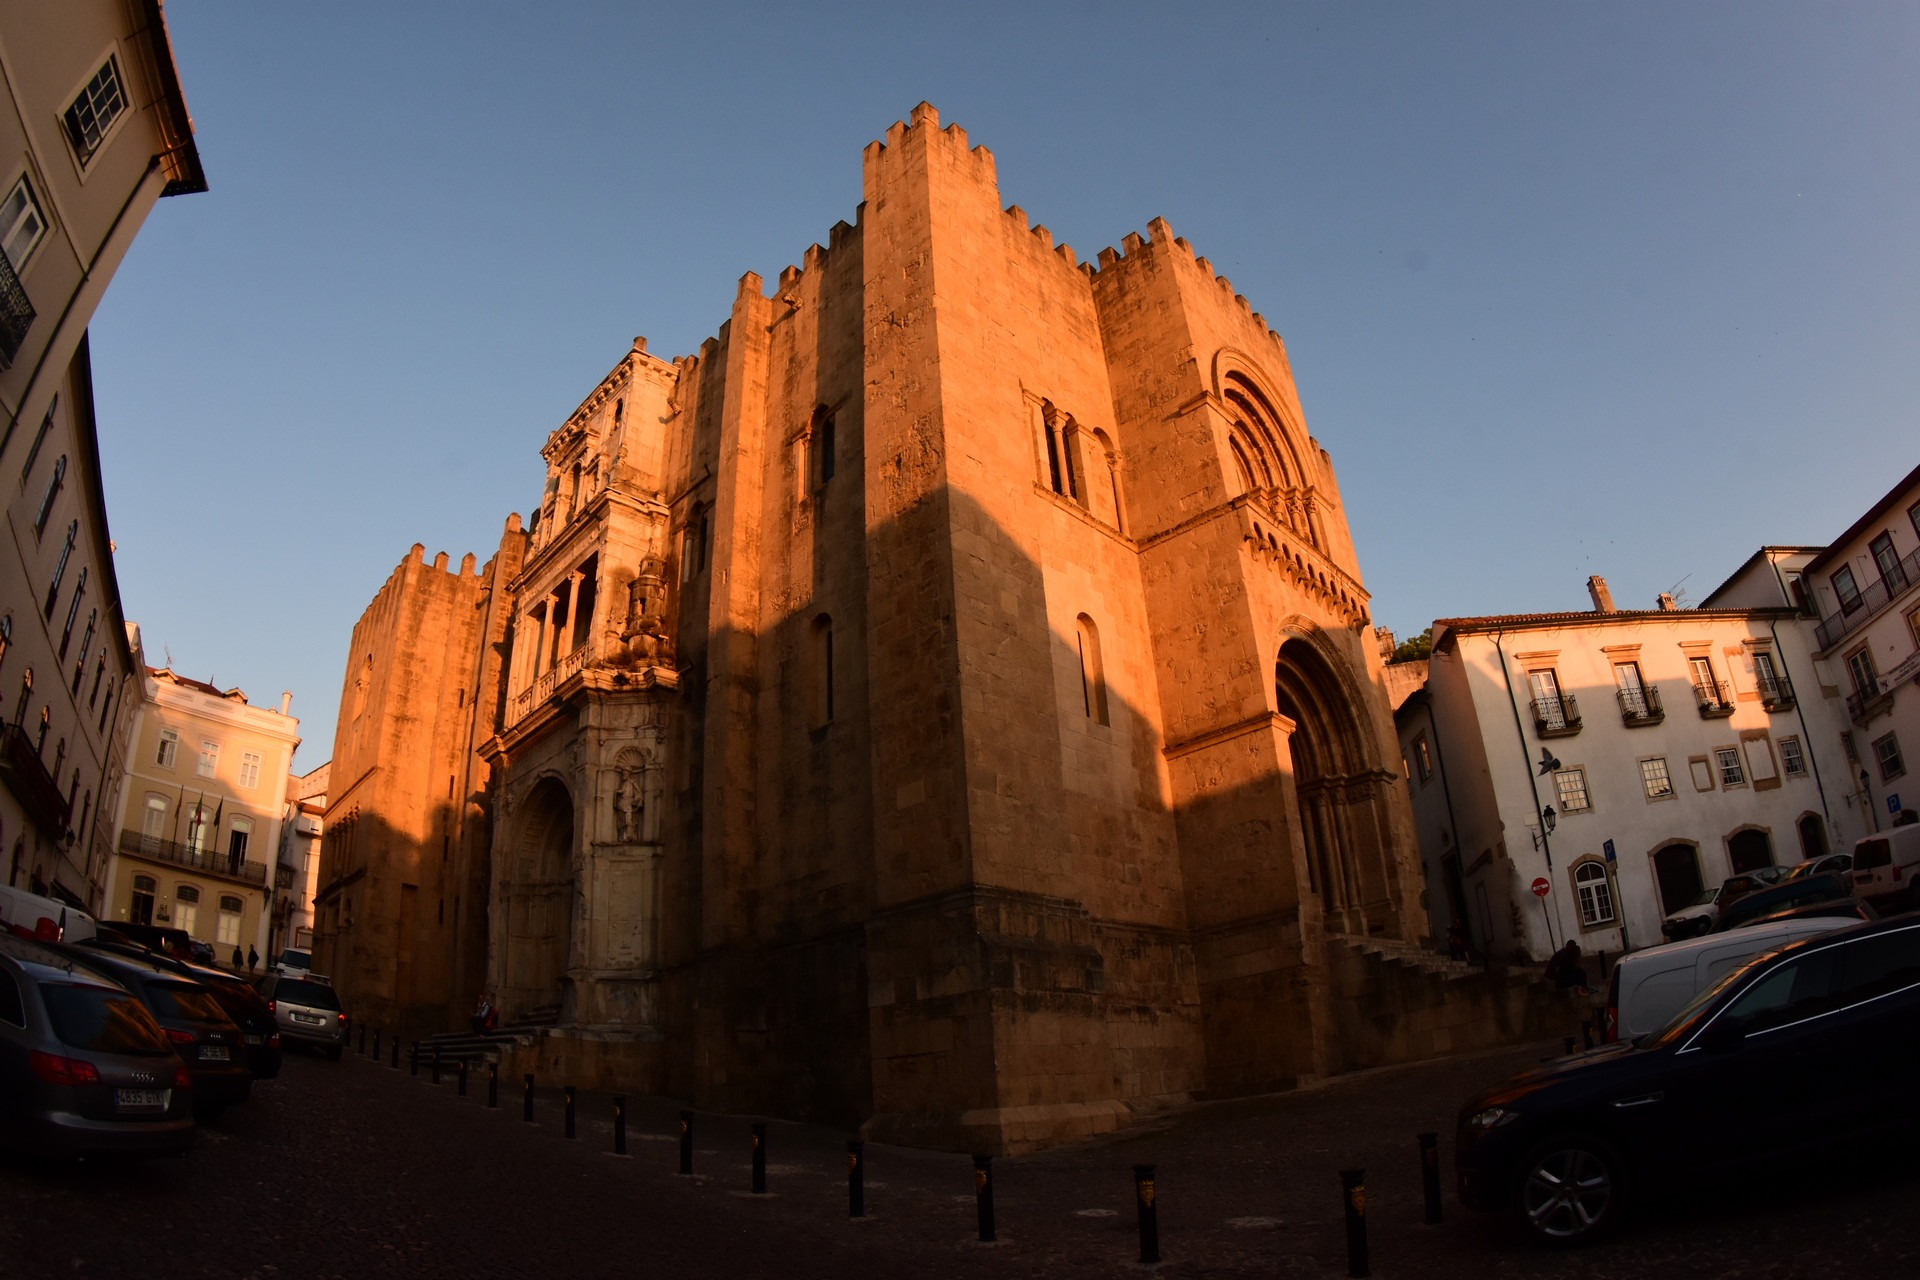 Portugal – First evening in Coimbra